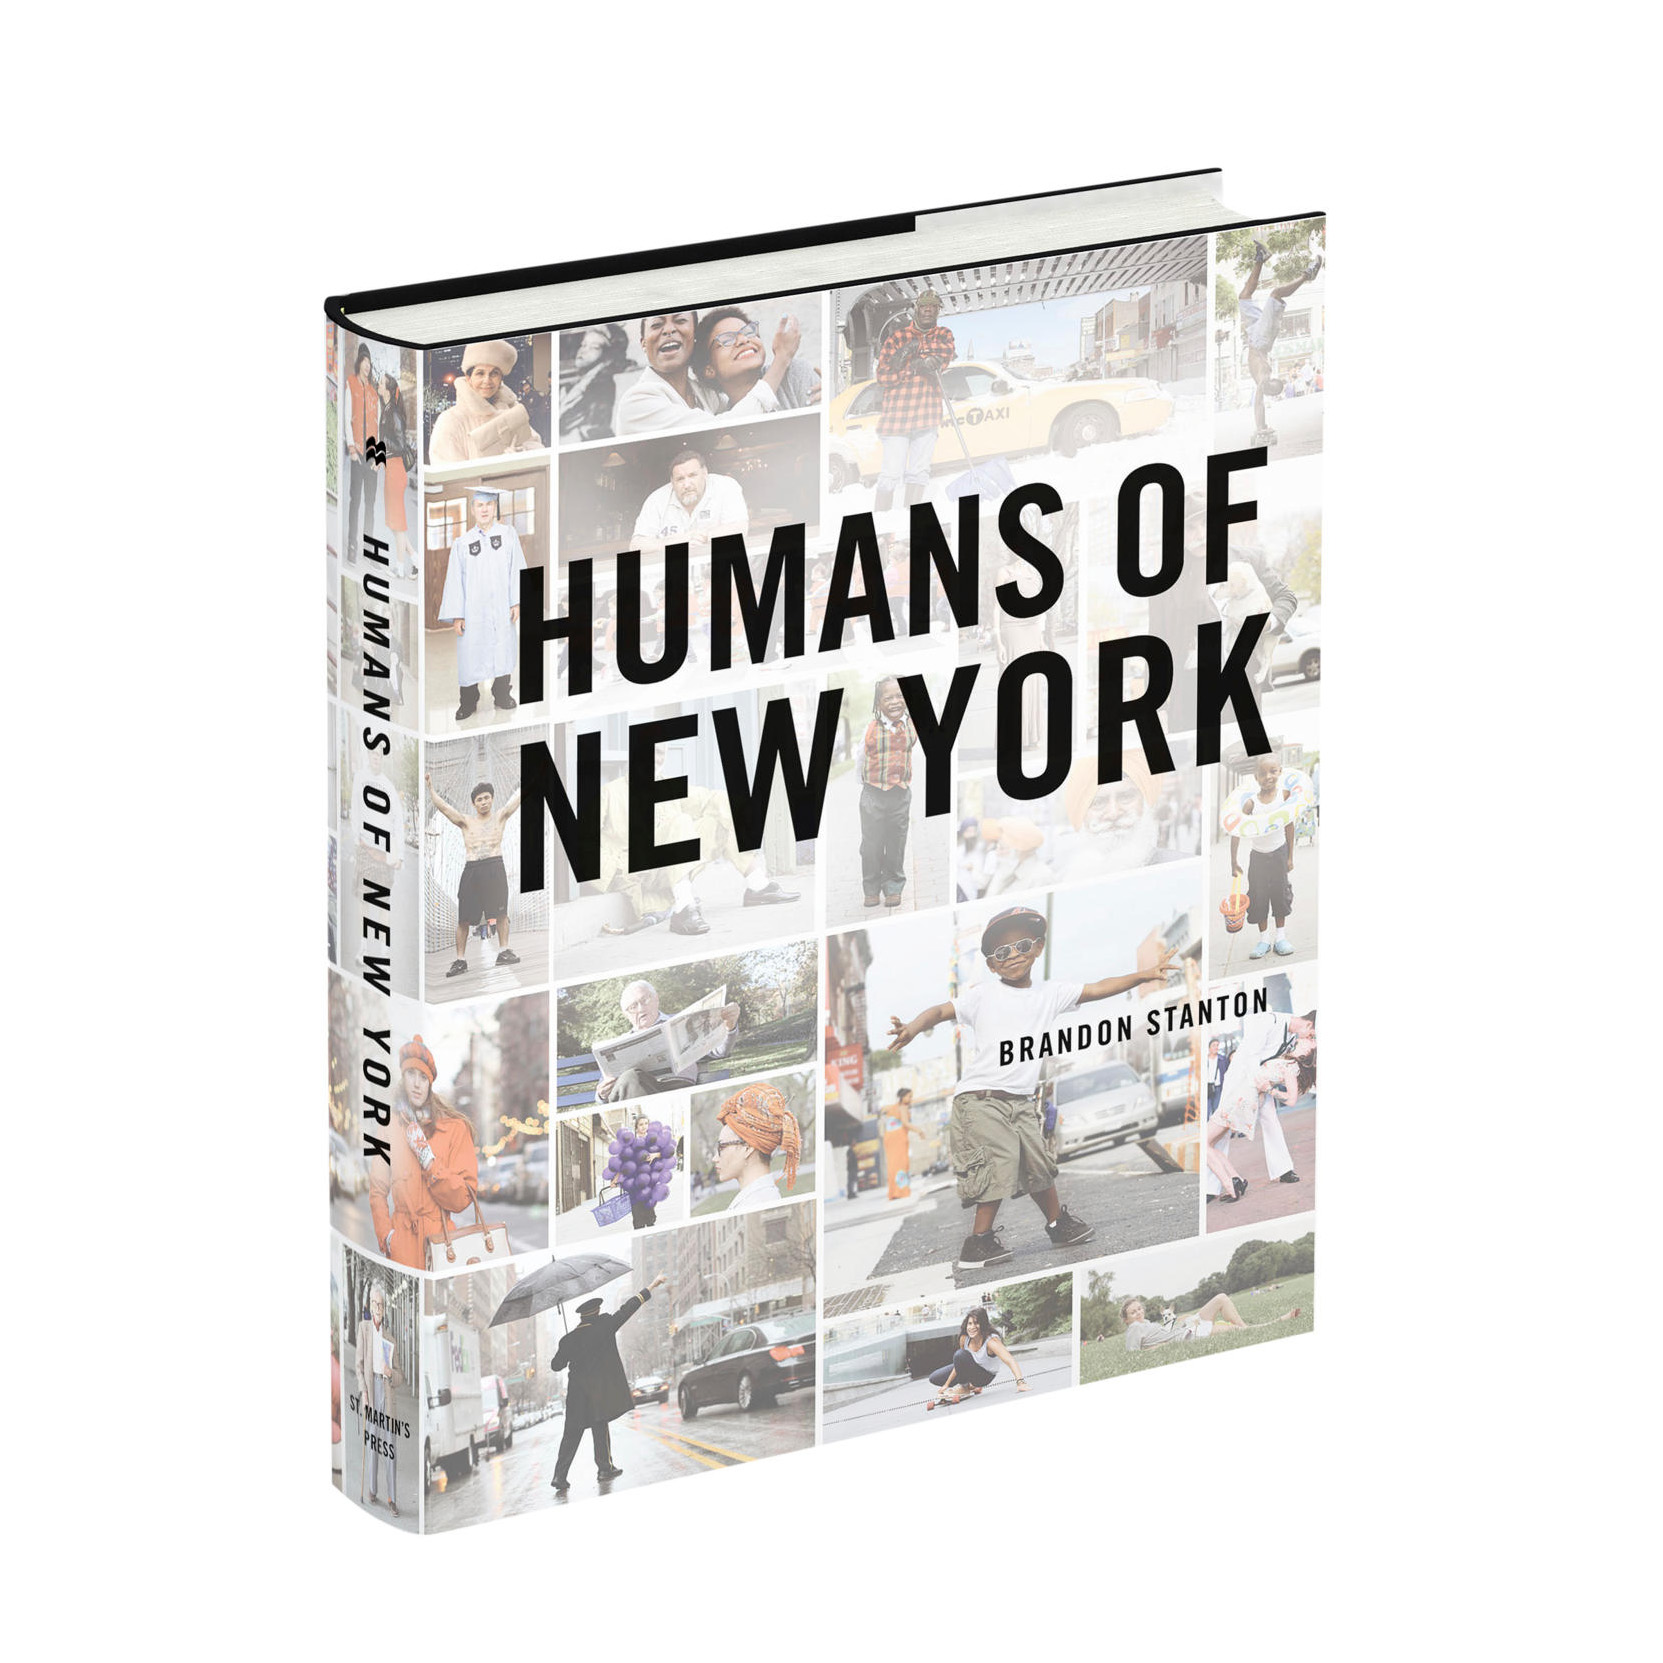 HUMANS OF NEW YORK COFFEETABLE BOOK